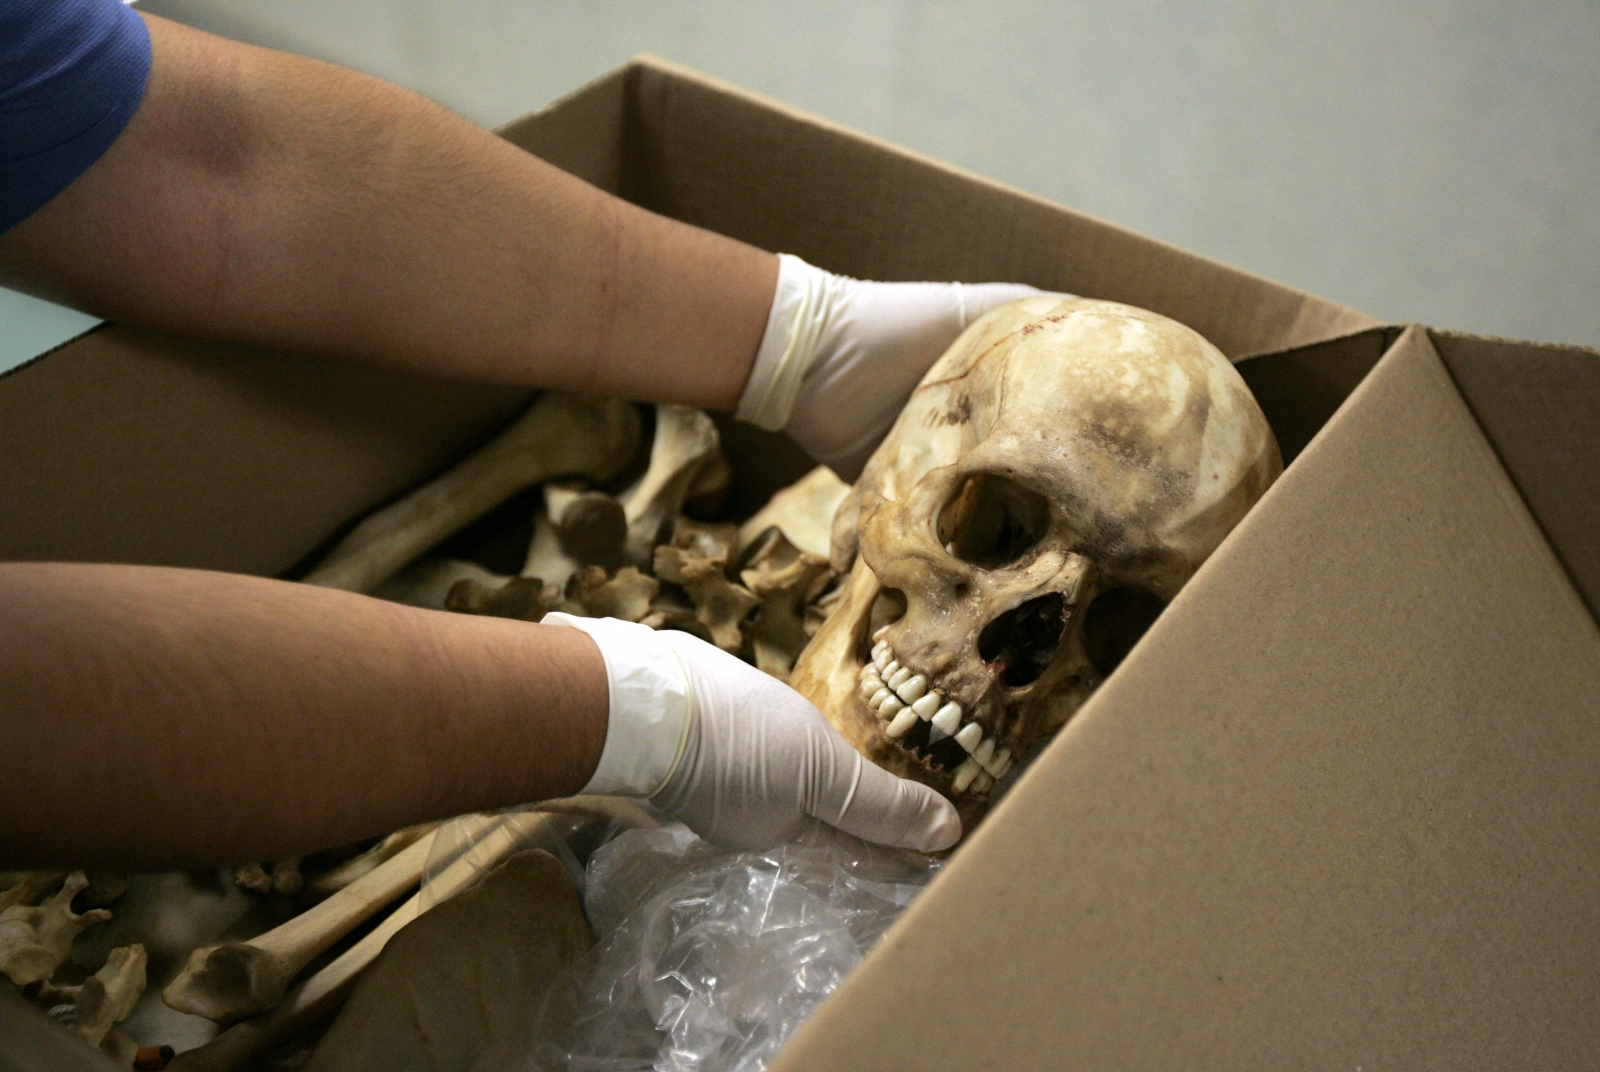 Archaeologists have discovered the skeleton of a girl from the Middle Ages buried face down, possibly because of witchcraft